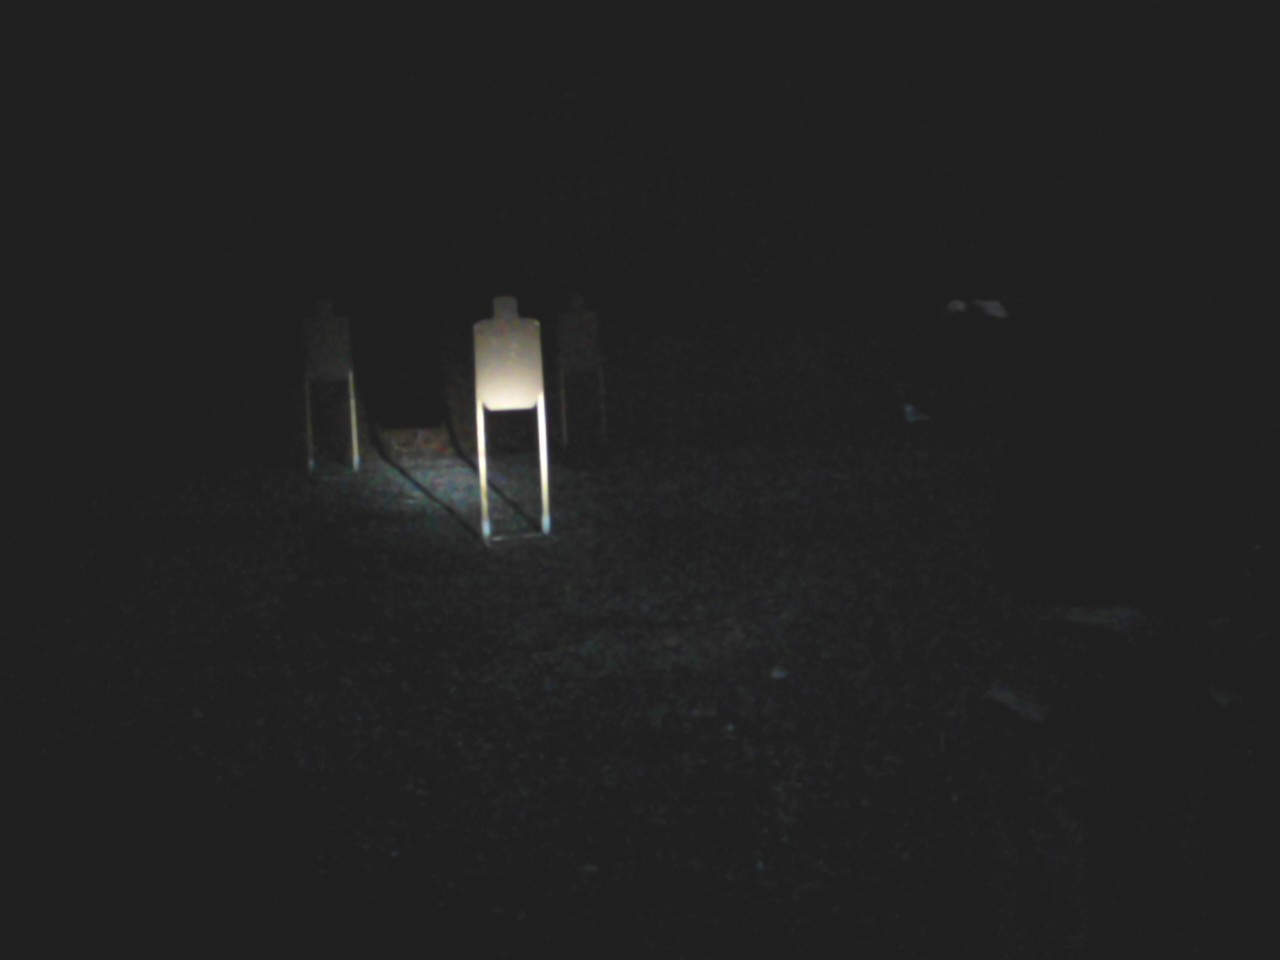 Night IDPA match with lasers and lights-flashlight.jpg